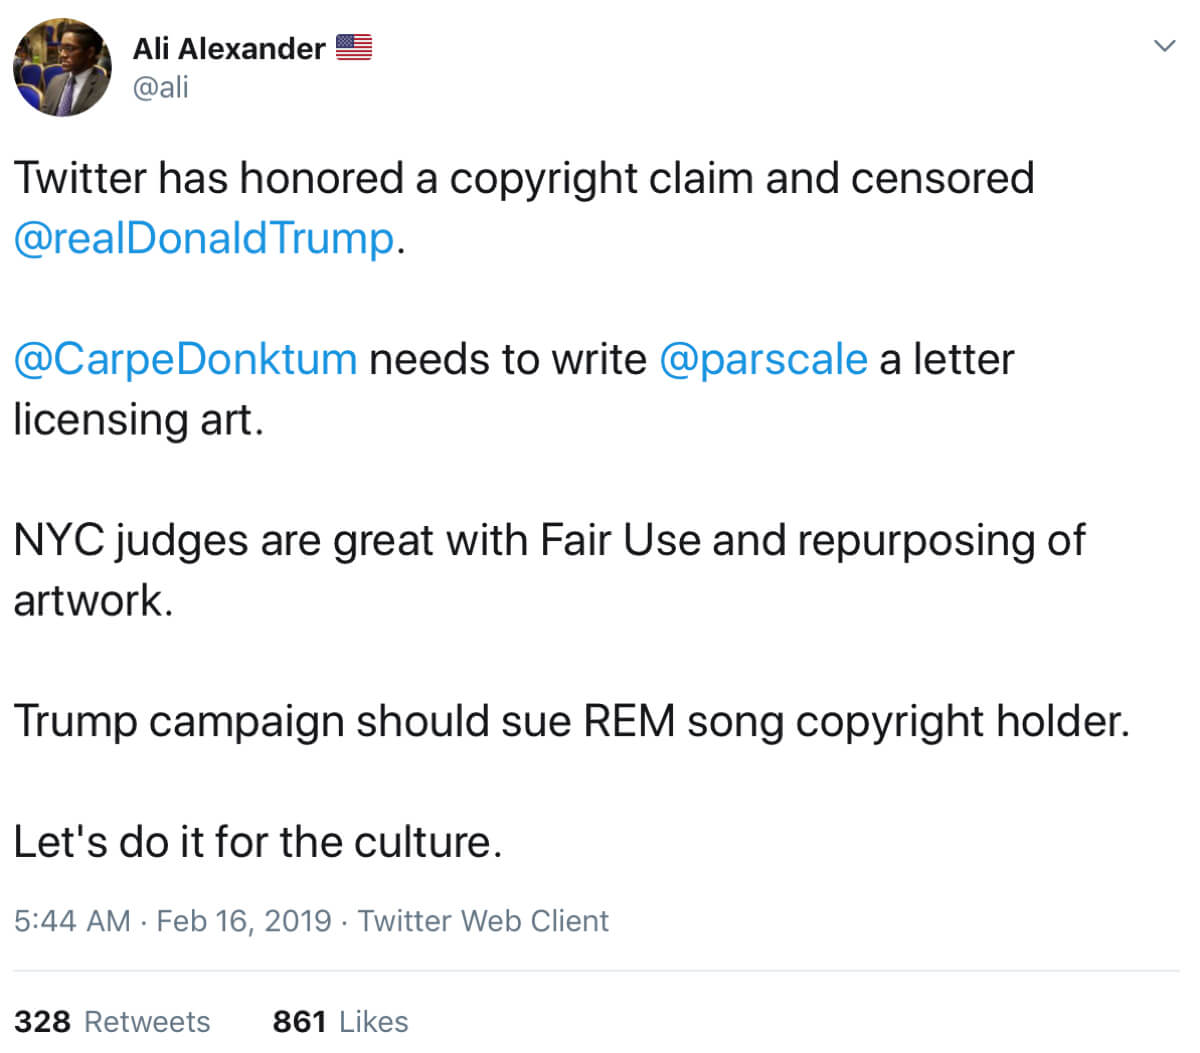 A tweet from Ali Alexander reacting to Universal's bogus copyright claim.